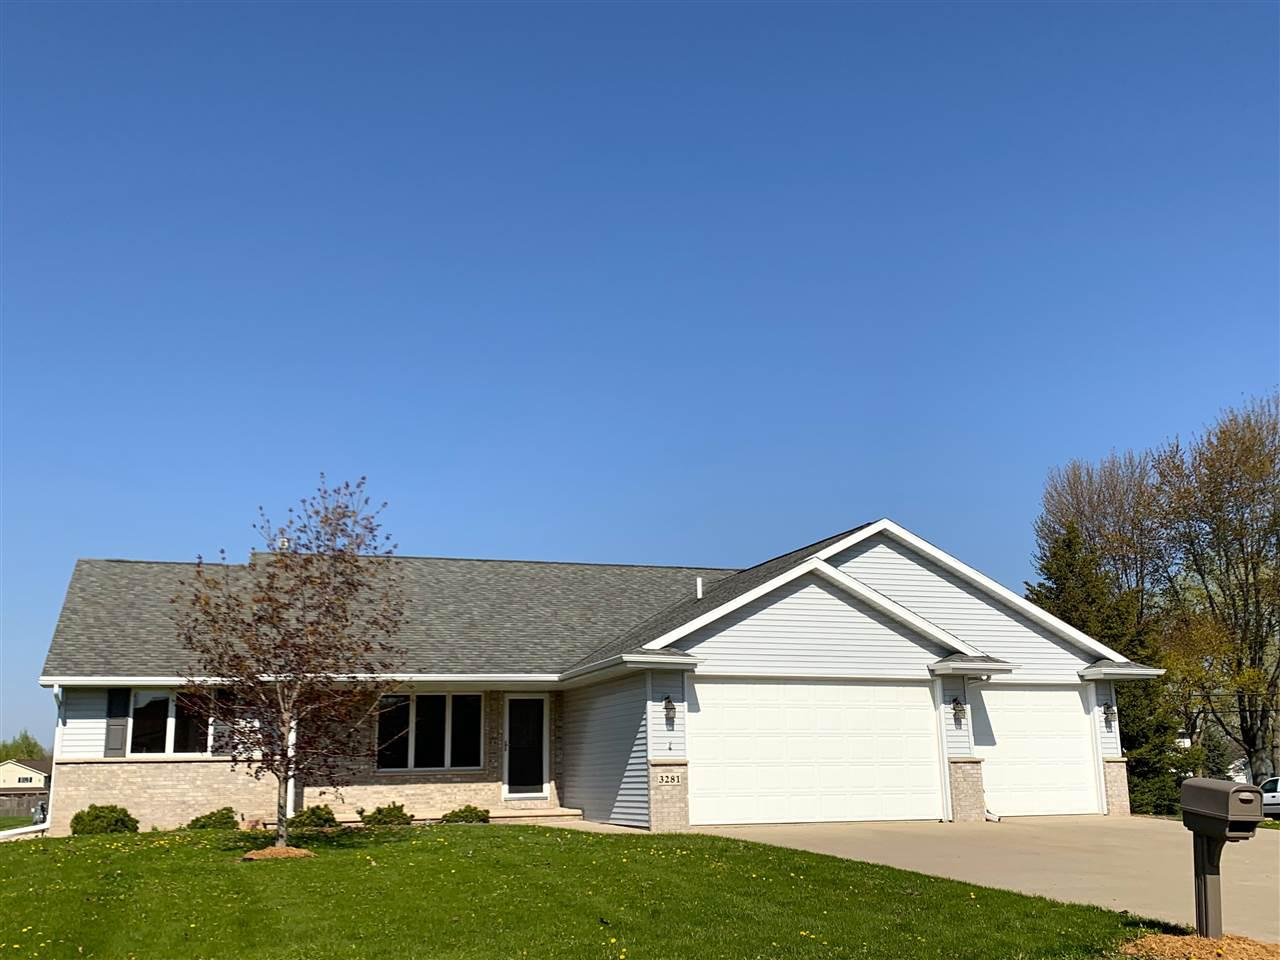 3281 N OUTAGAMIE STREET STREET, GRAND CHUTE, WI 54914